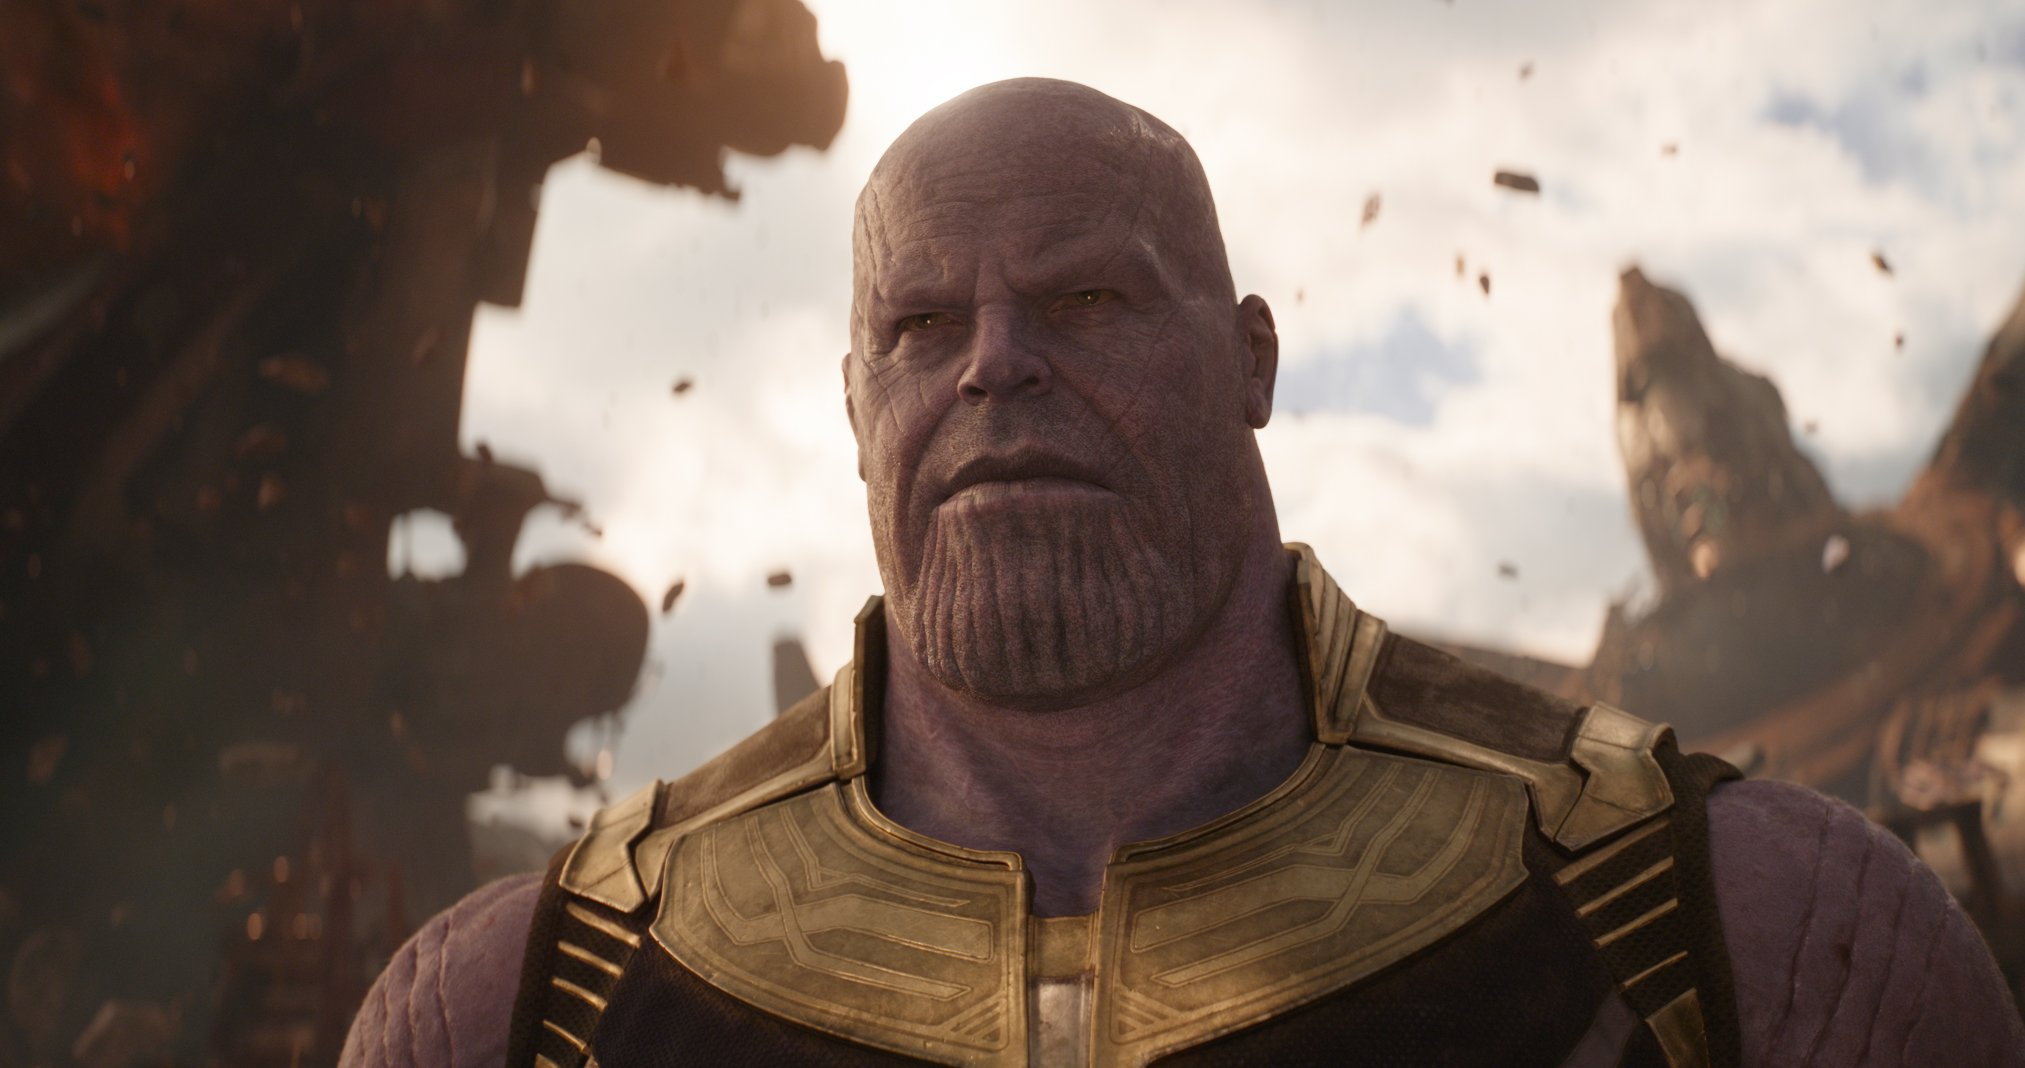 BOX OFFICE REPORT: AVENGERS INFINITY WAR MAKES MONEY